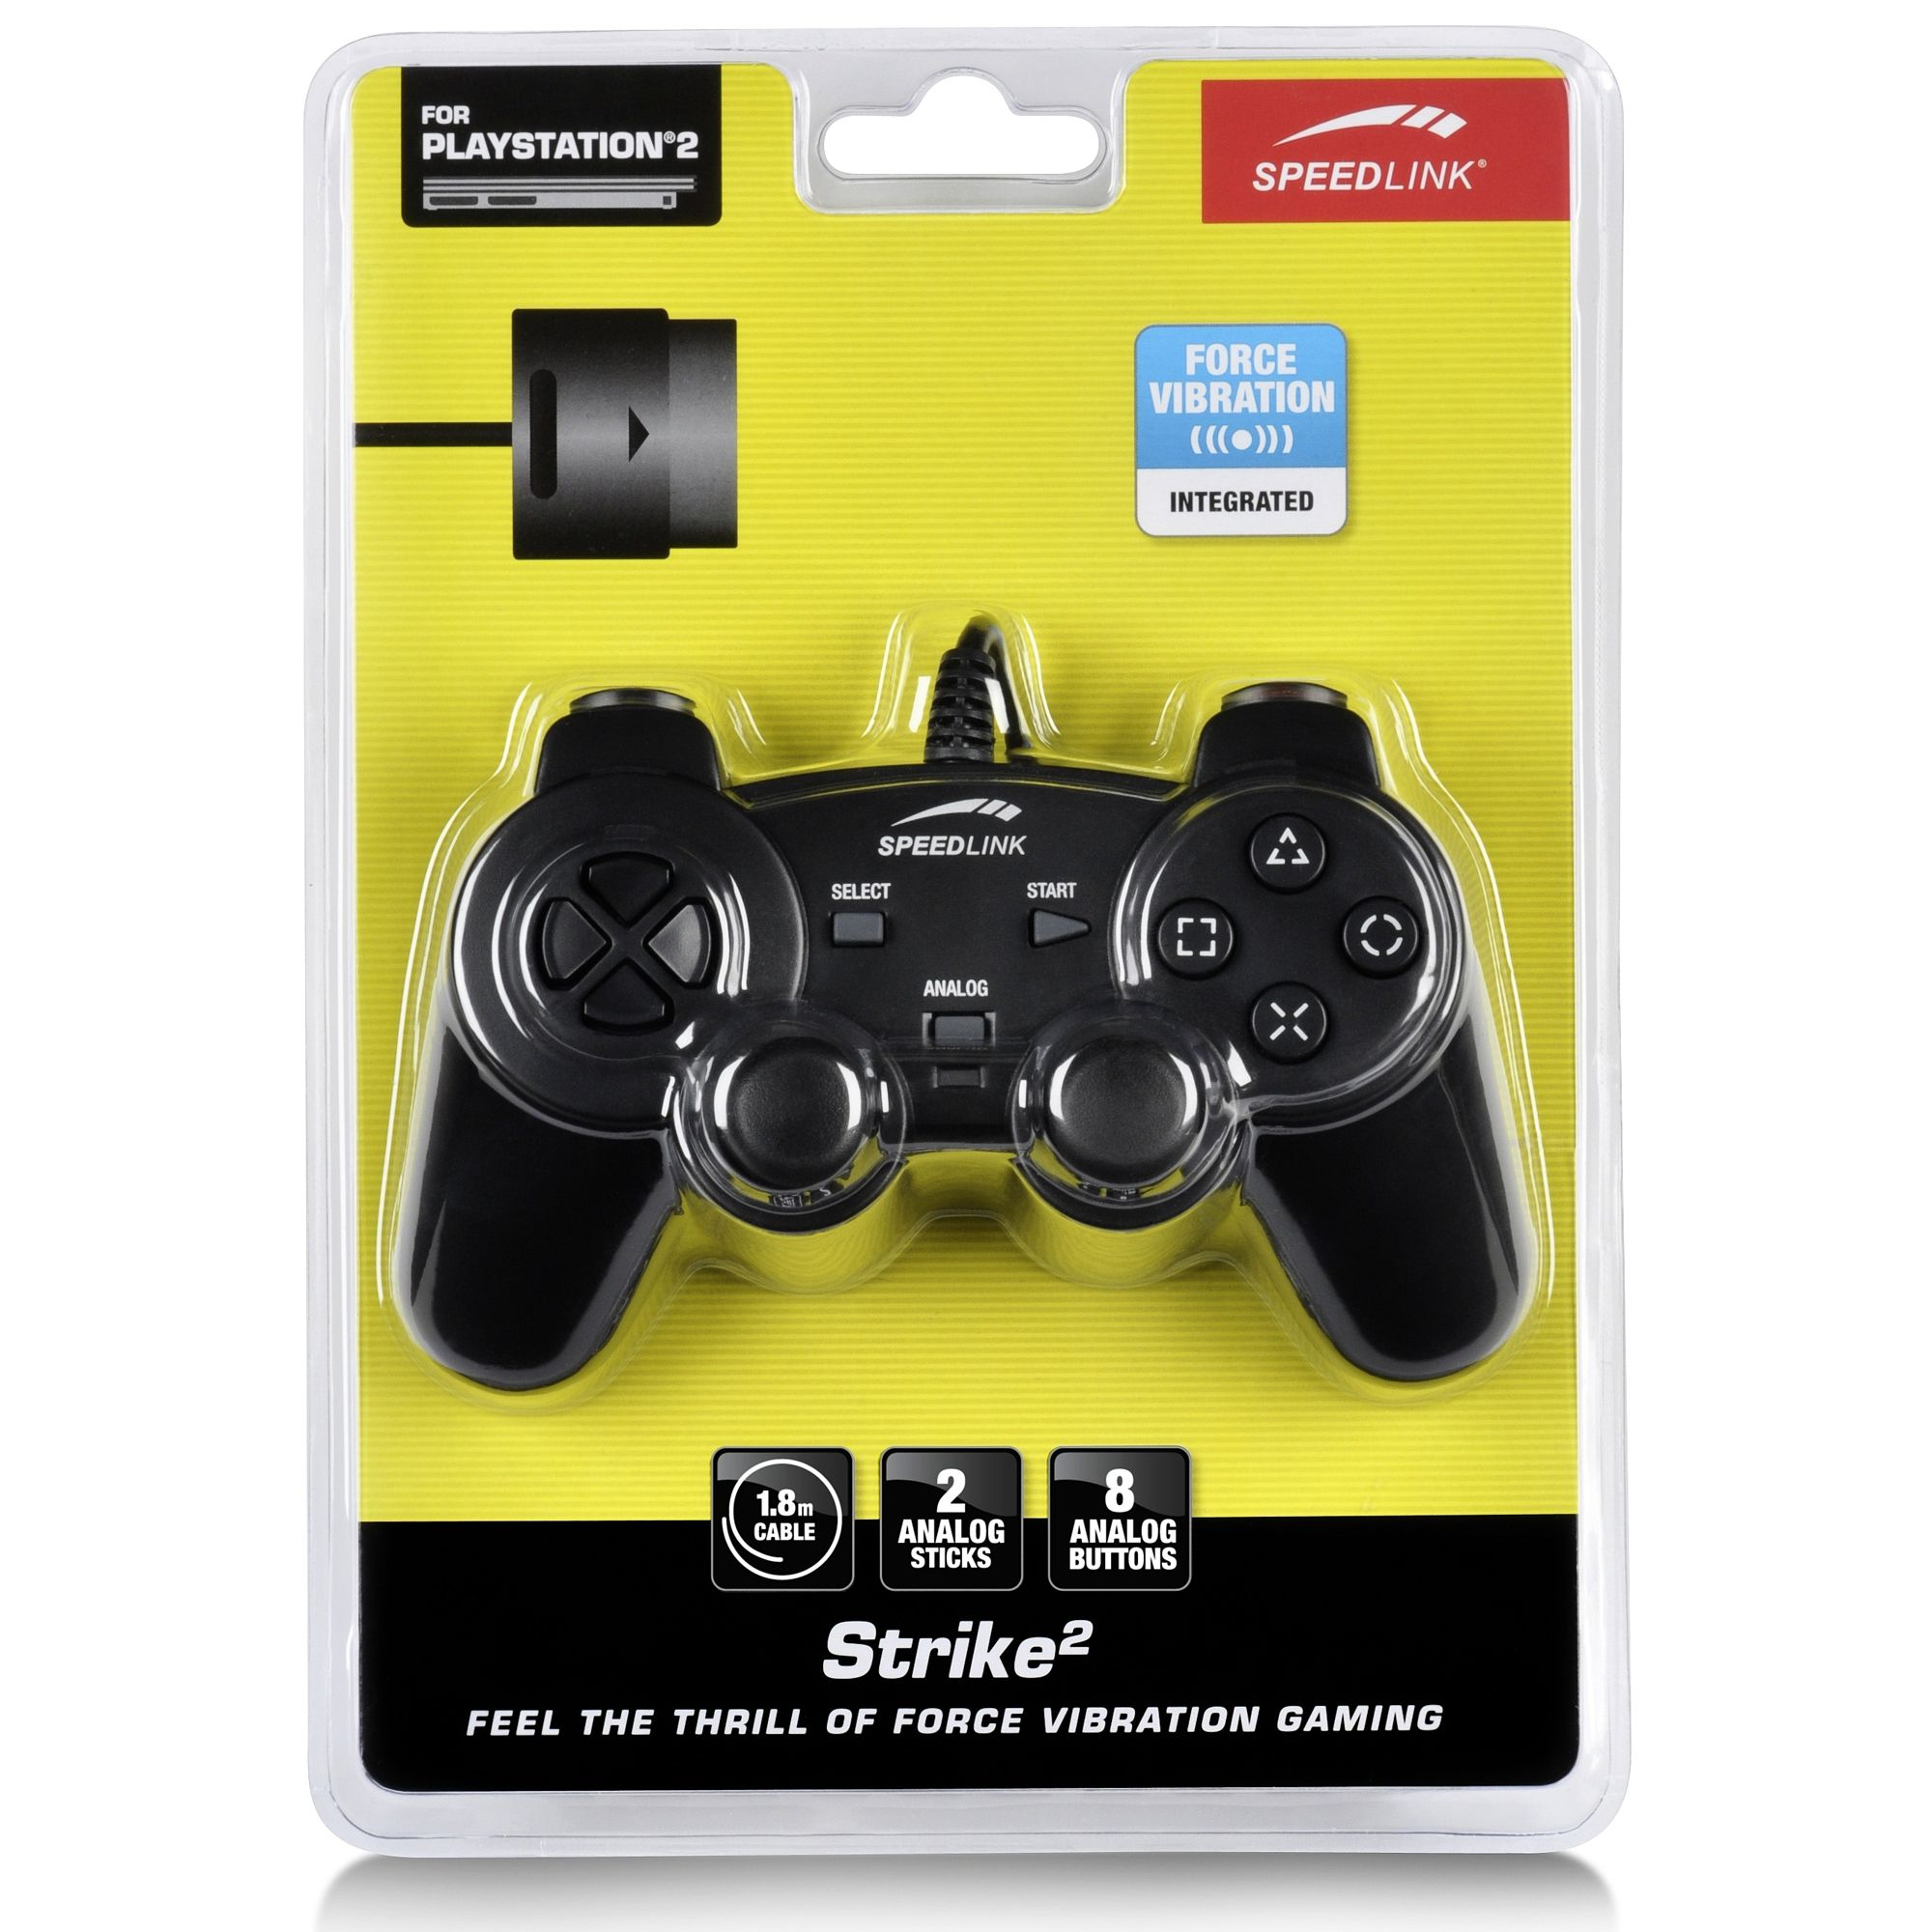 Speedlink Strike 2 Controller Playstation 2